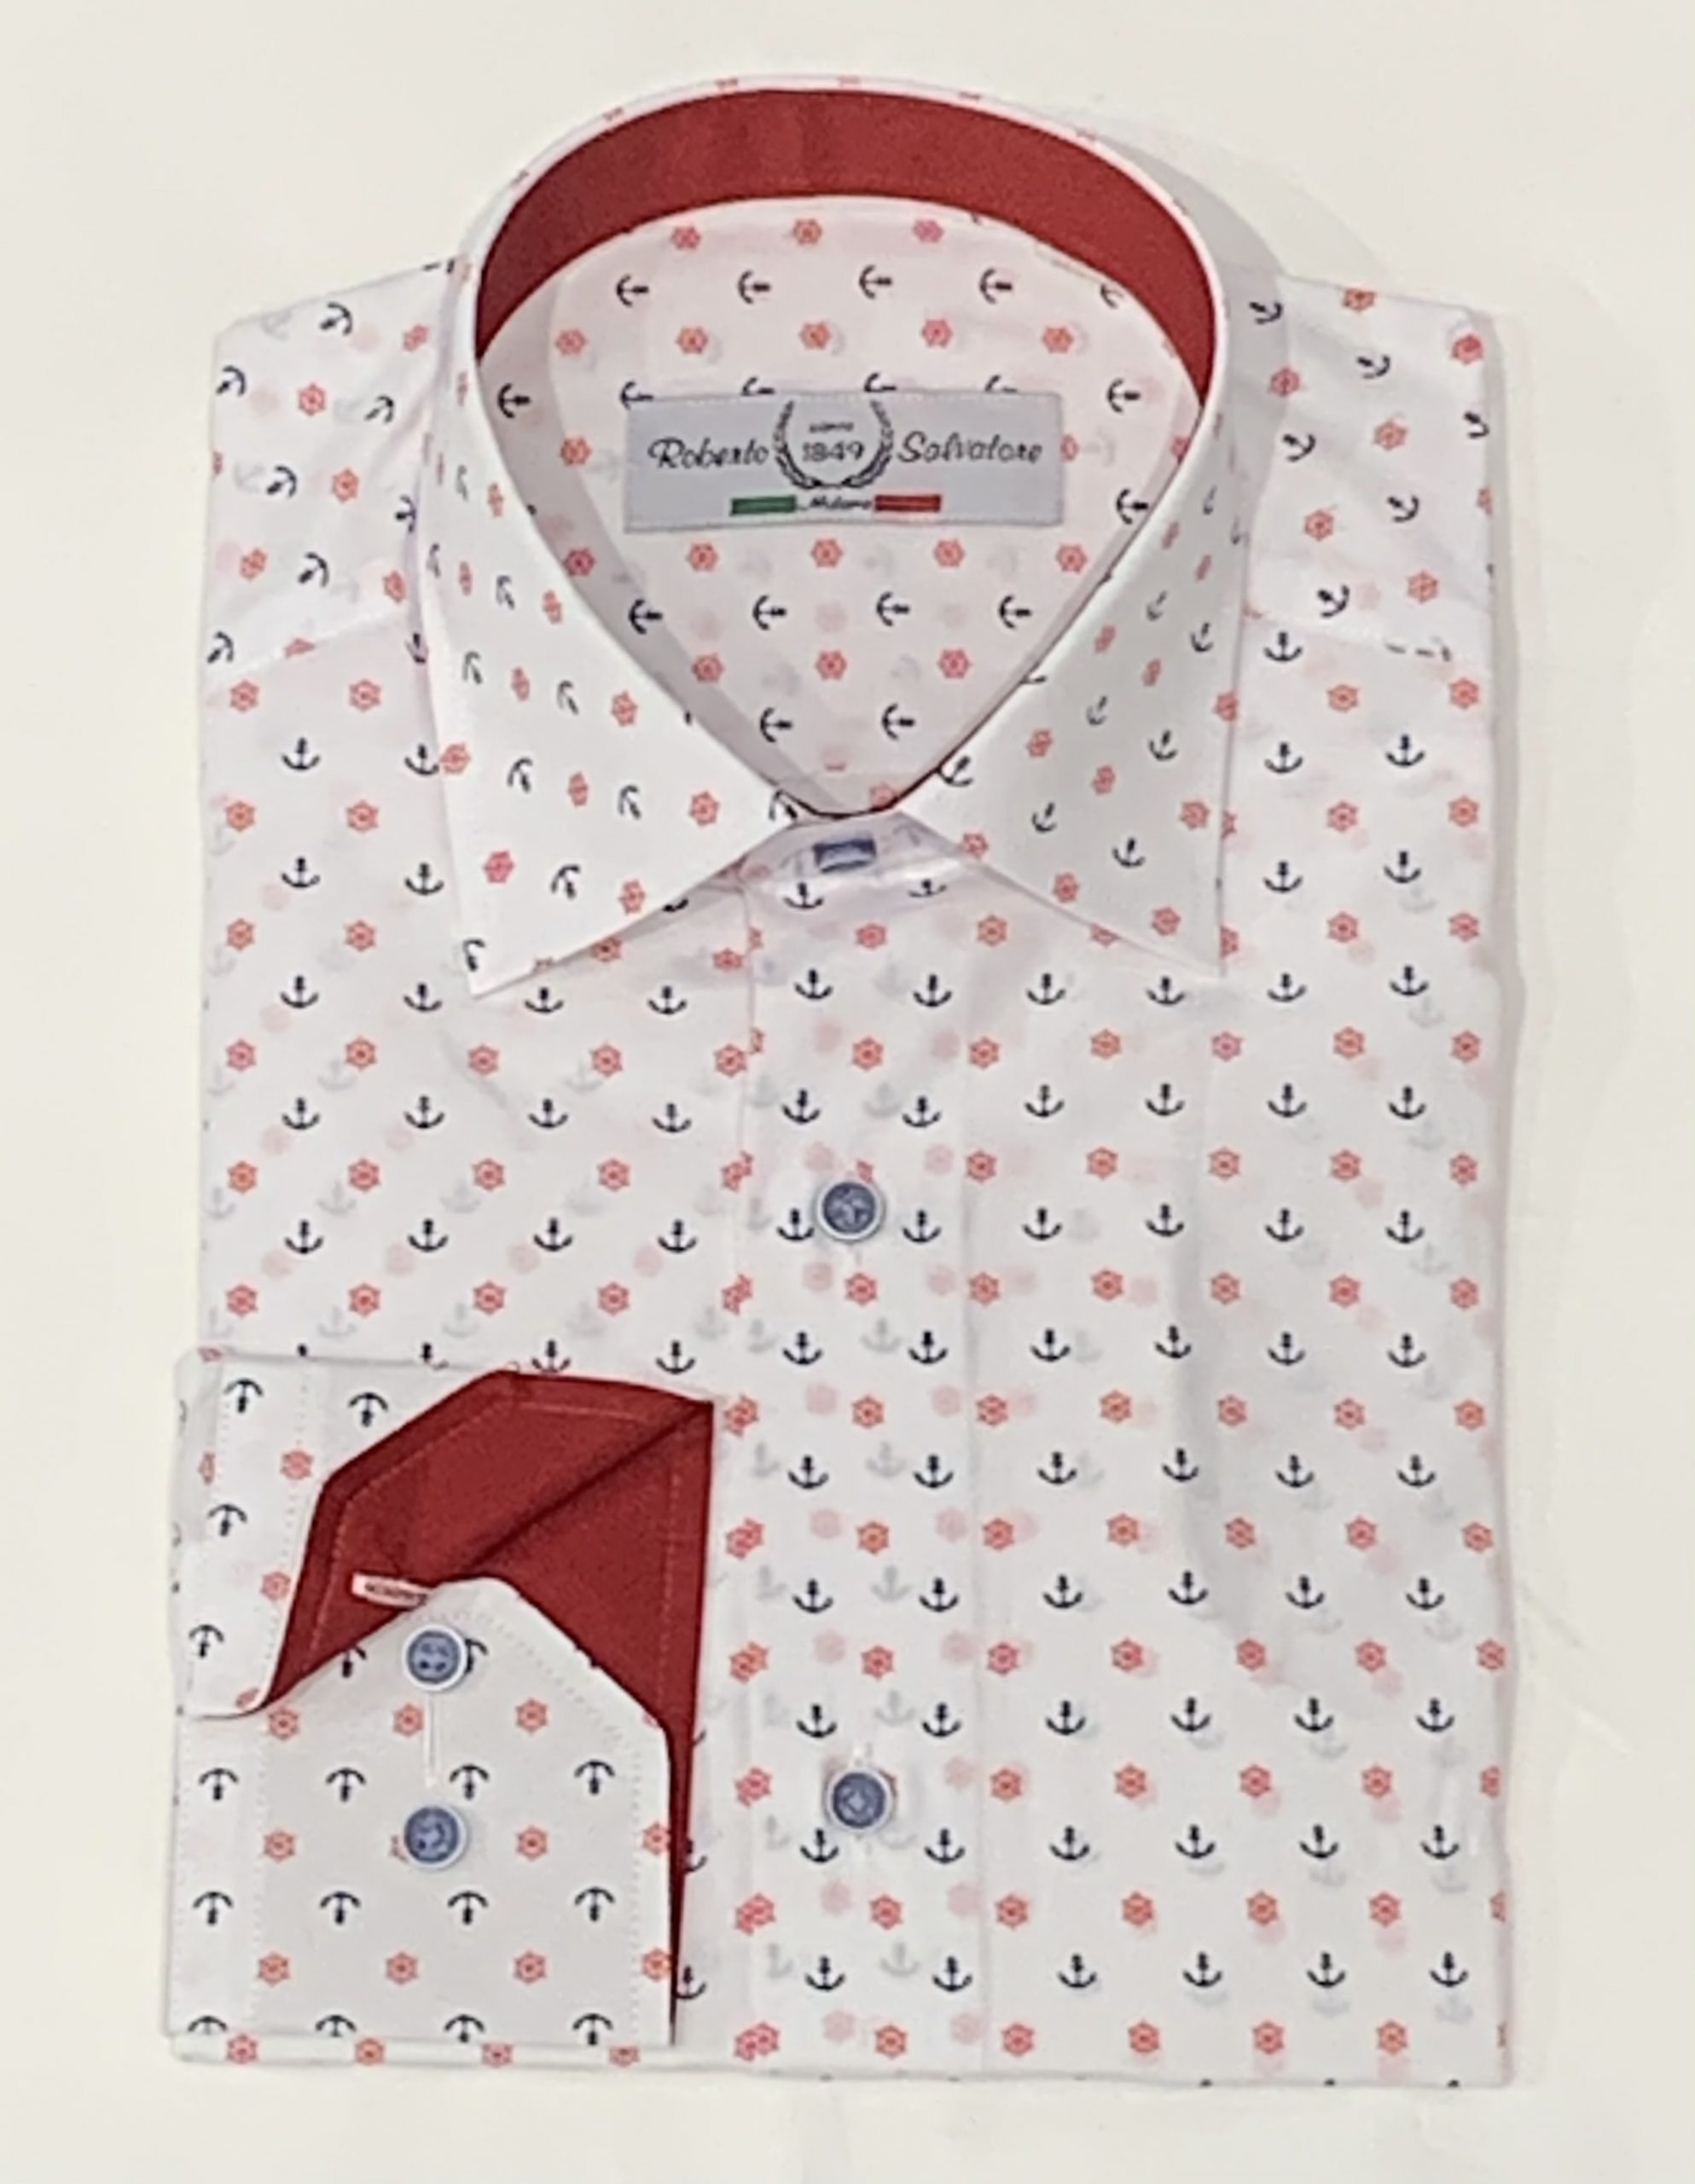 Roberto Salvatore-Shirt Slimfit-White and Red-Steering wheel and Sea anchors